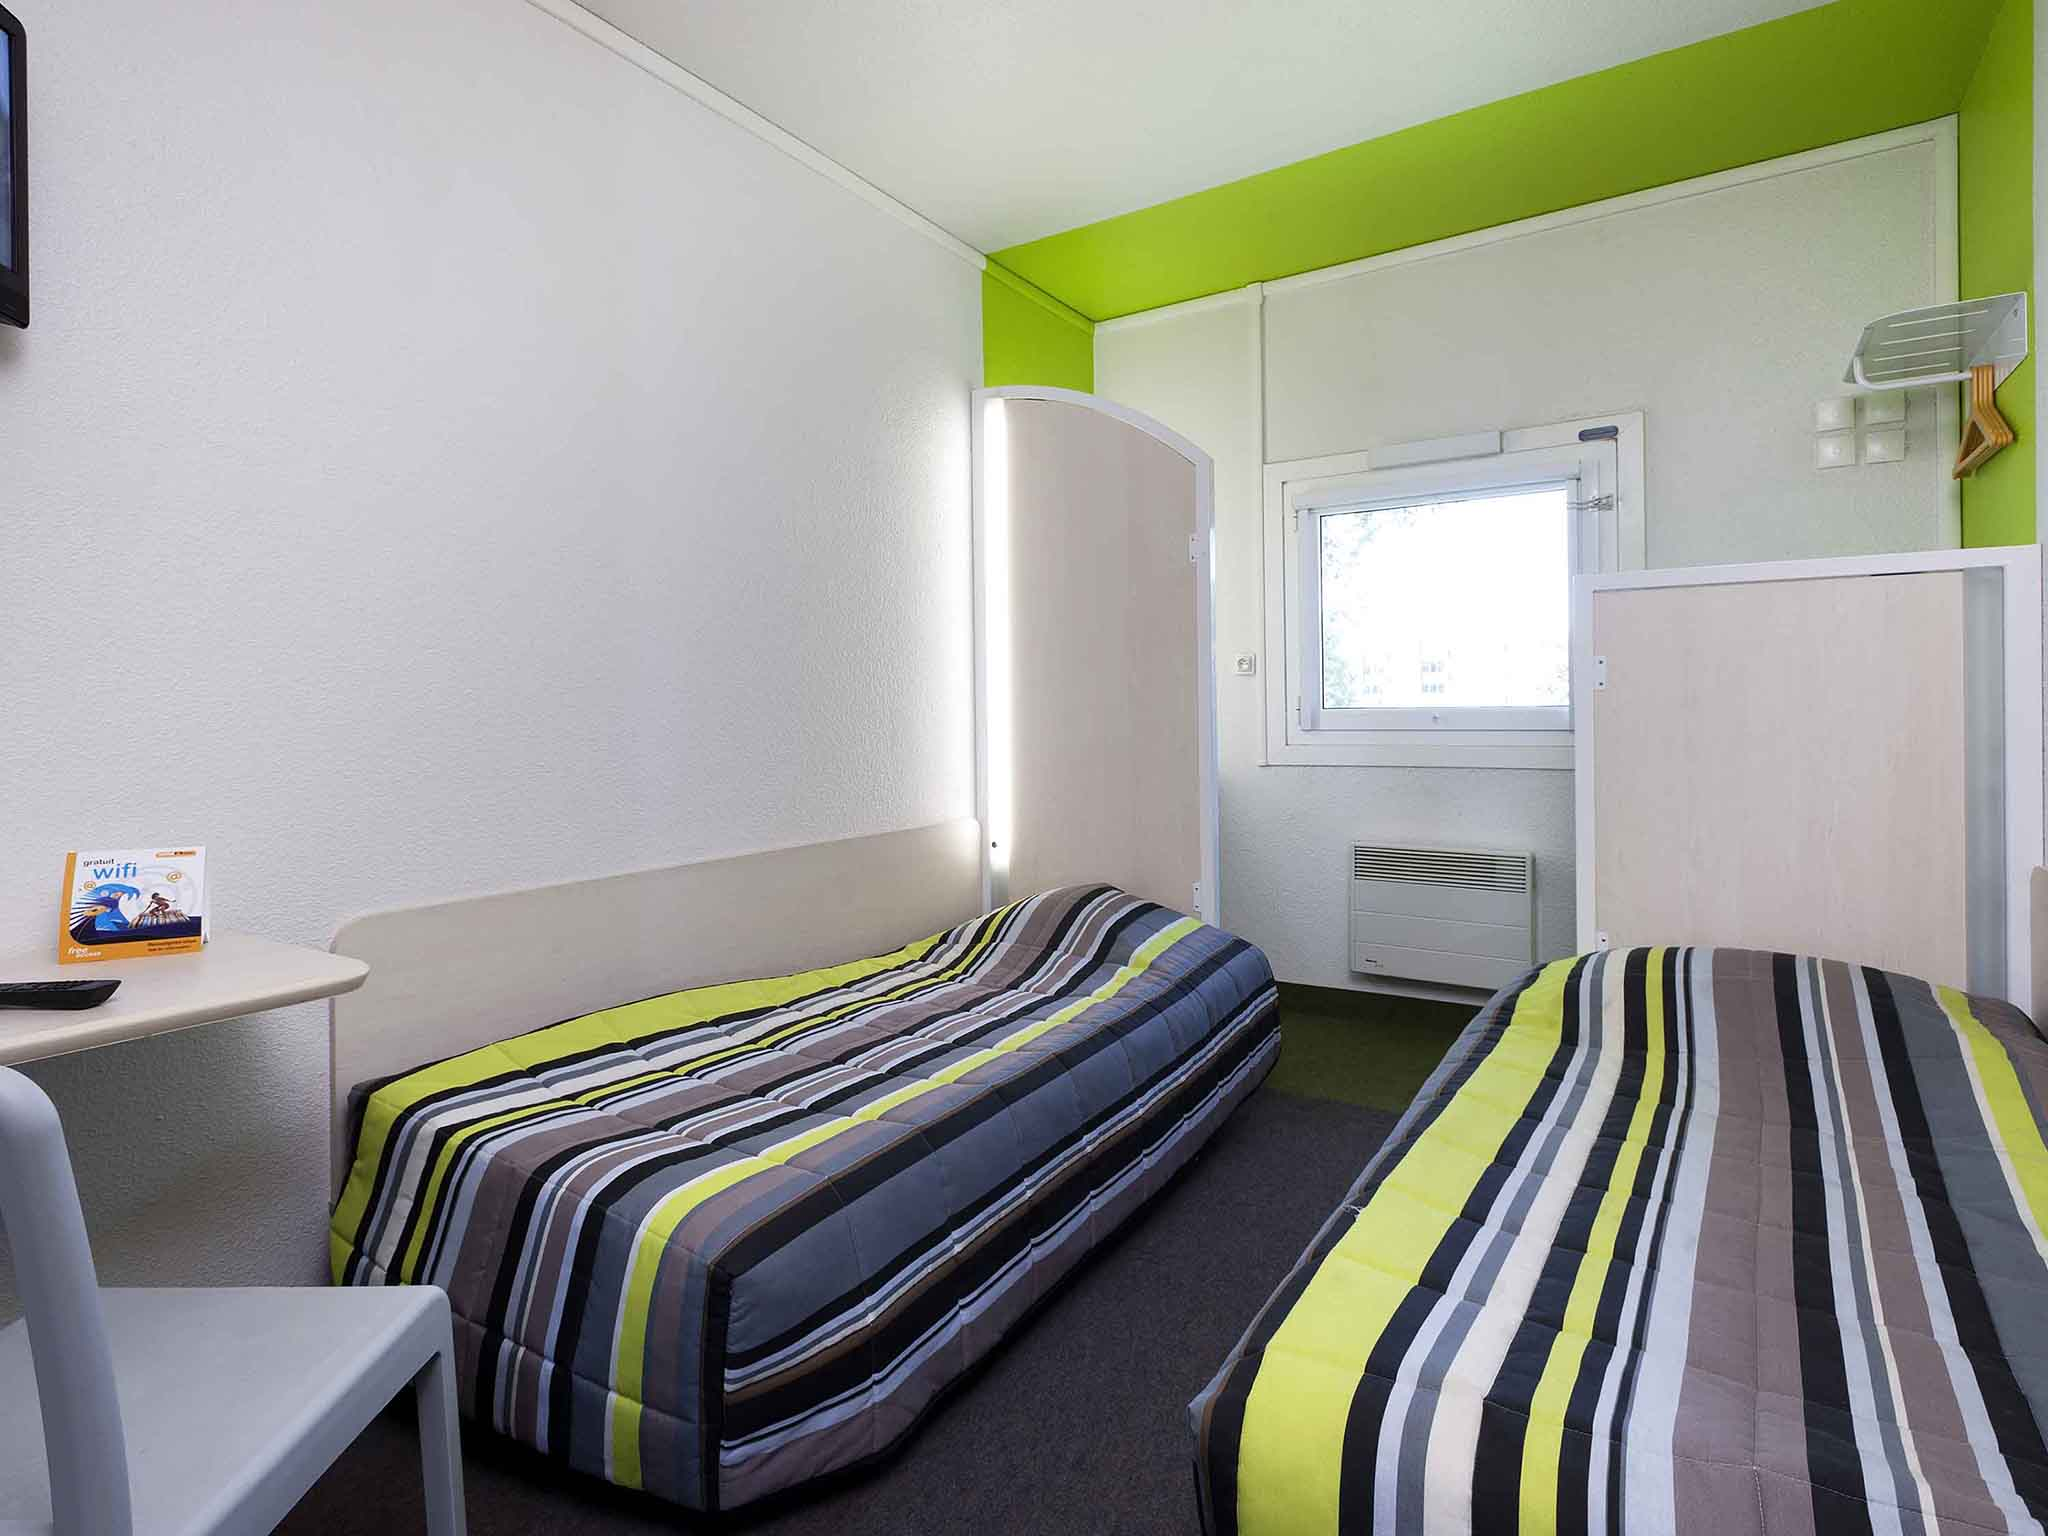 Hotel – hotelF1 Valenciennes Douchy les Mines